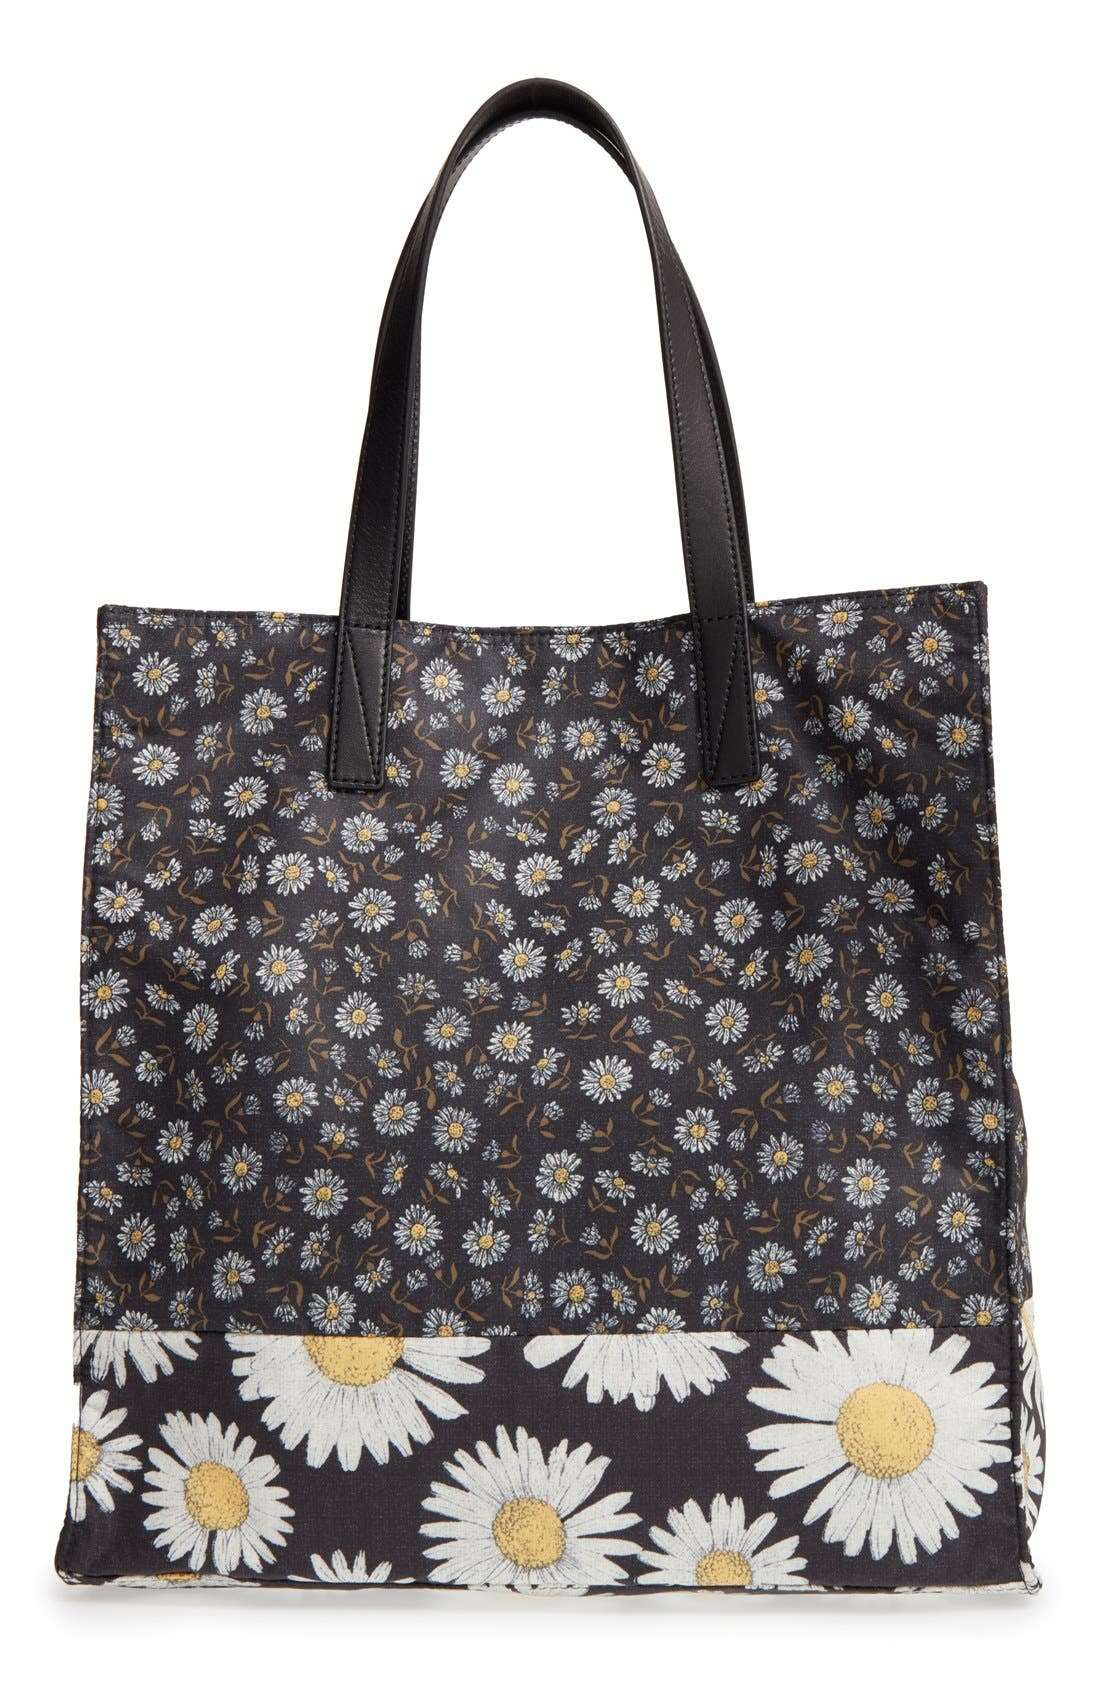 Alternate Image 3  - MARC JACOBS 'B.Y.O.T. - Daisy' Floral Print Tote